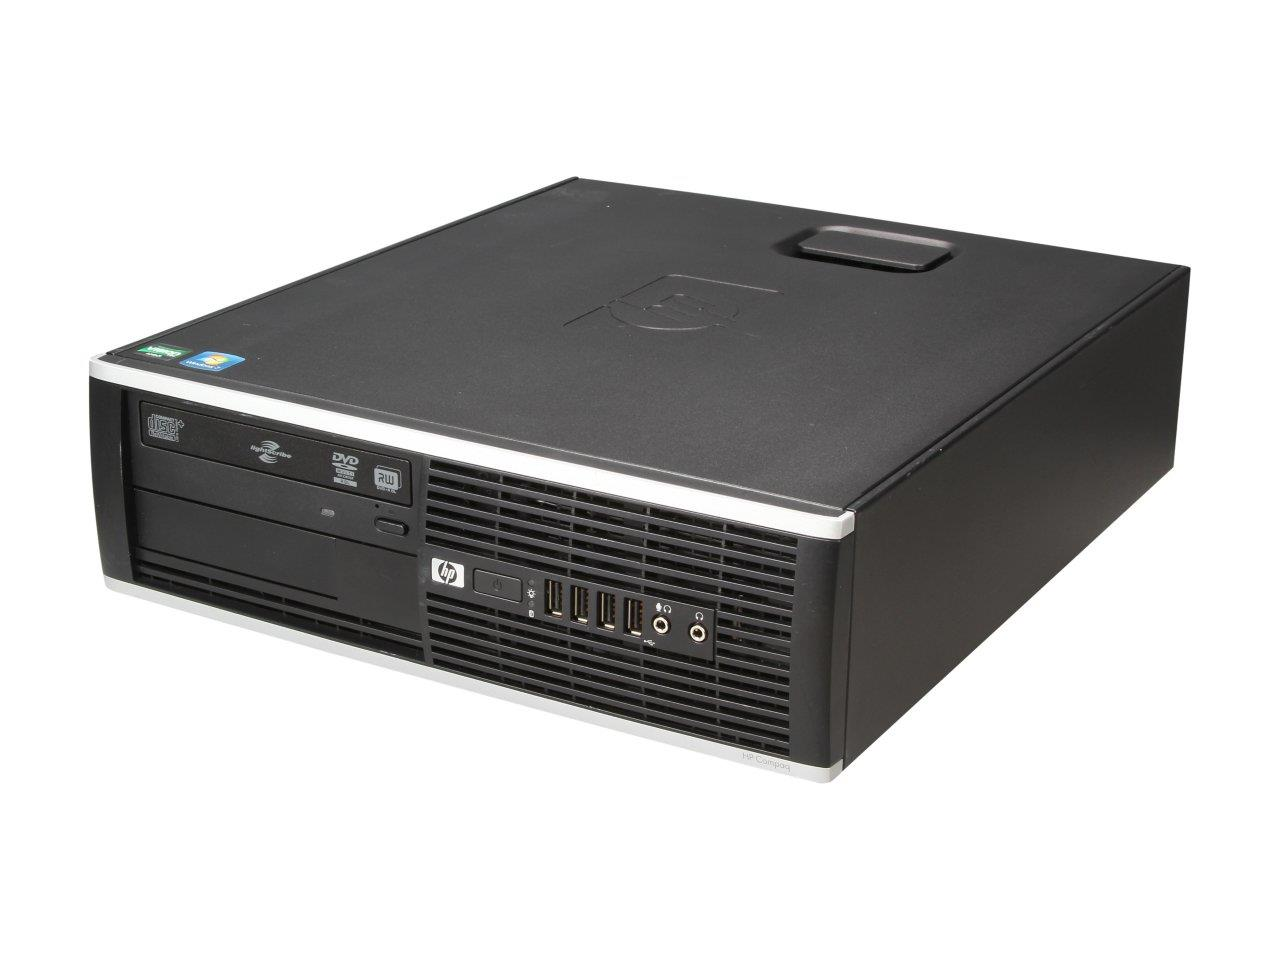 HP Compaq 6005 Pro SFF AMD Dual Core 2.8GHz 2GB DDR3 160GB HDD Desktop